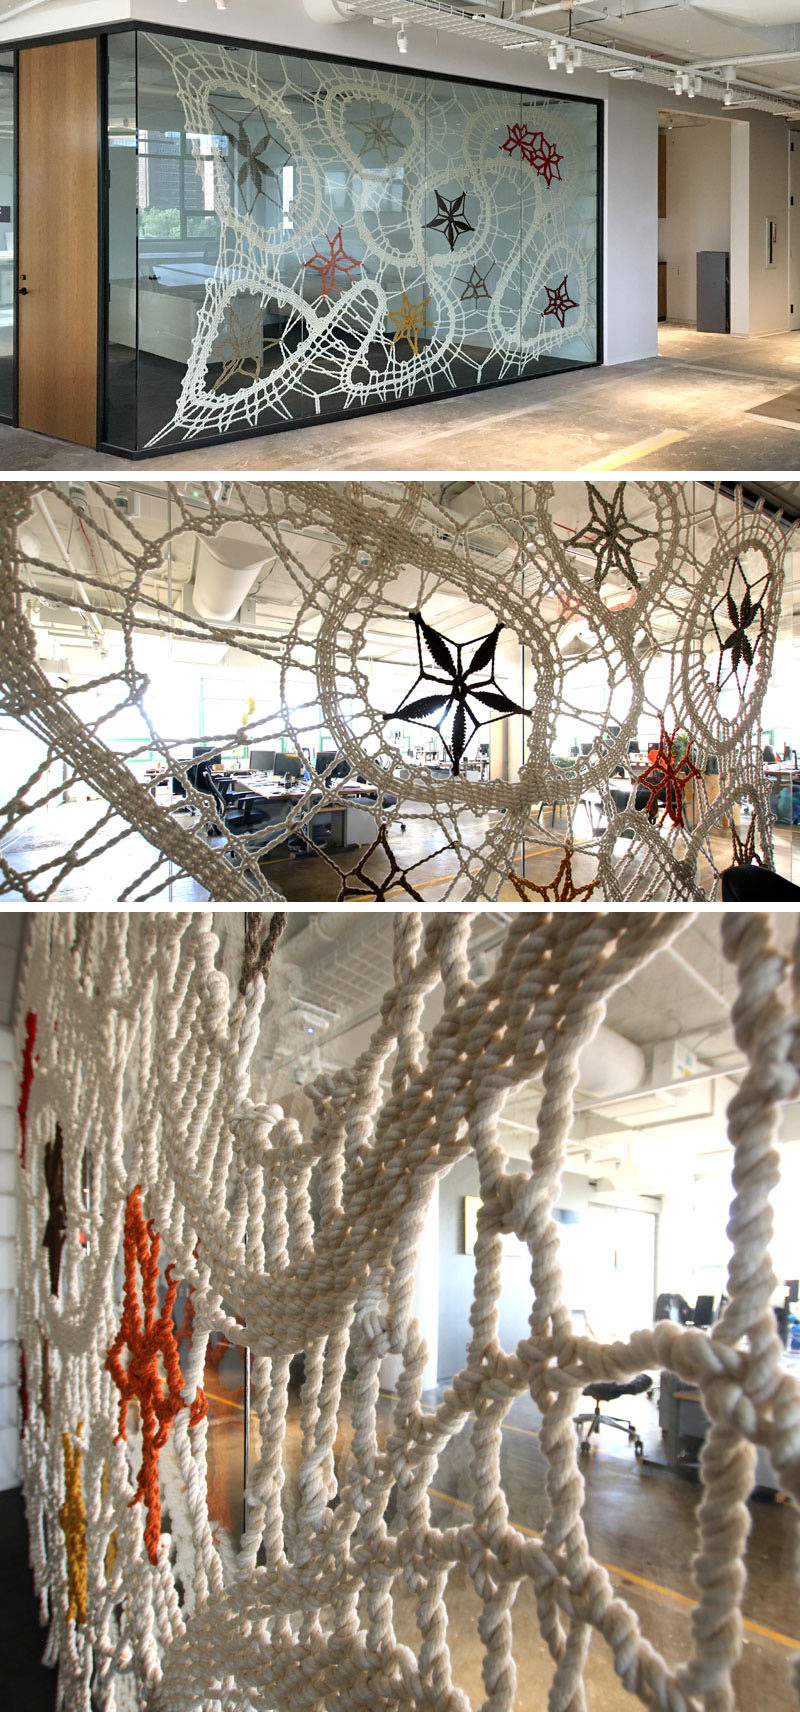 Artist Manca Ahlin of Mantzalin, was commissioned by Etsy to create a collection of handmade rope installations for their new head office in Dumbo, New York.